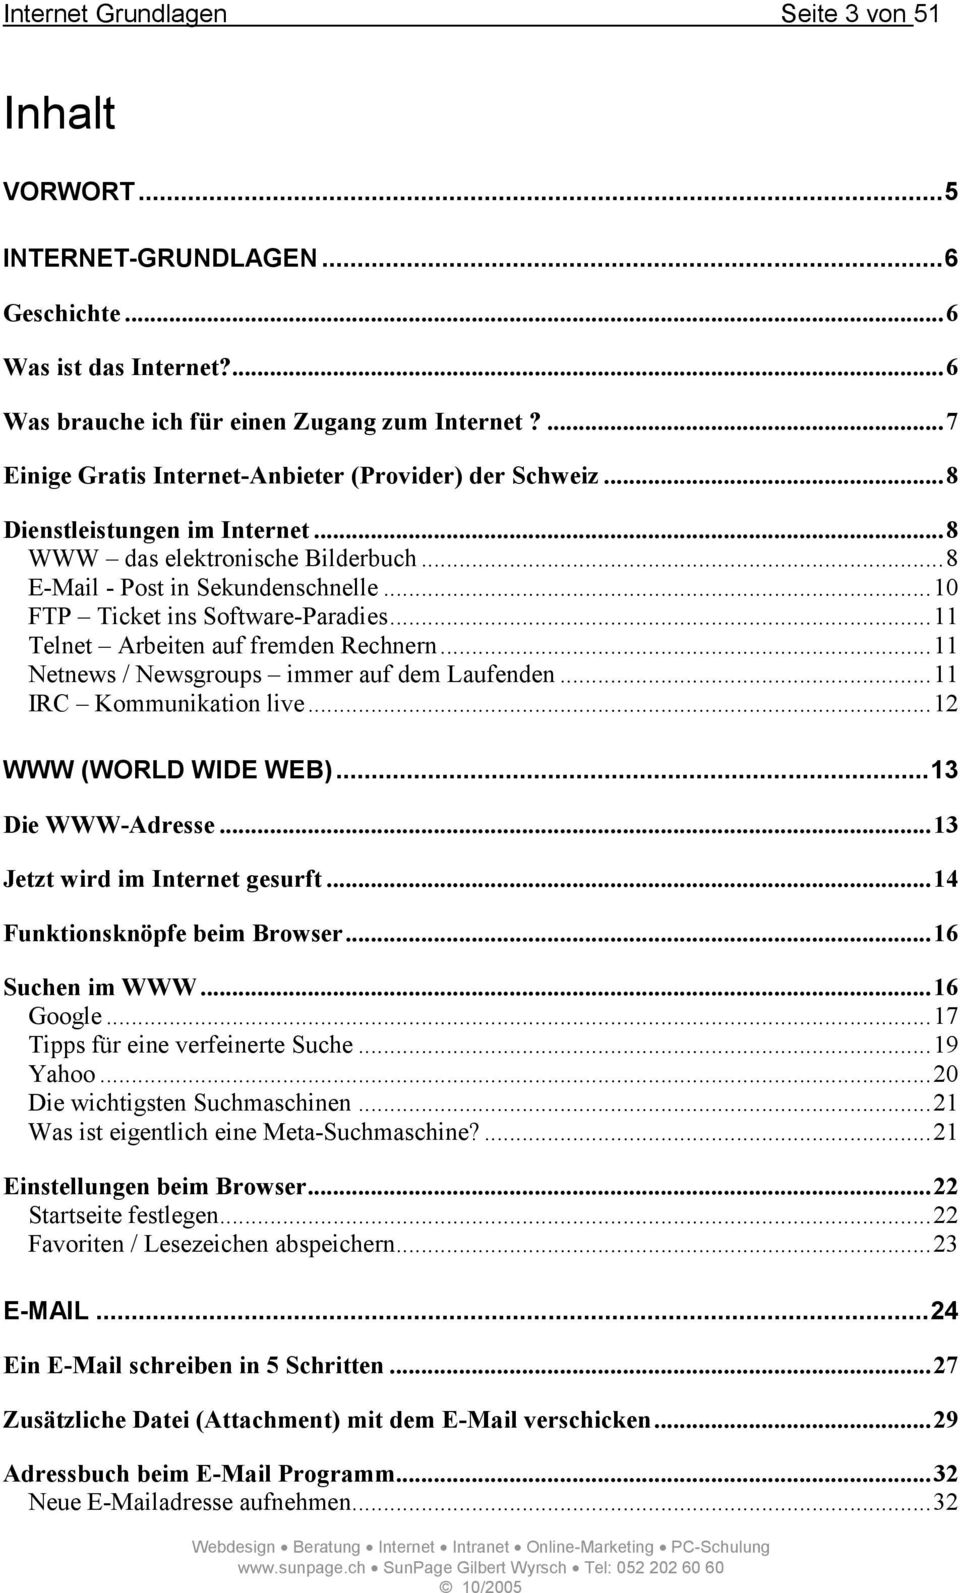 ..10 FTP Ticket ins Software-Paradies...11 Telnet Arbeiten auf fremden Rechnern...11 Netnews / Newsgroups immer auf dem Laufenden...11 IRC Kommunikation live...12 WWW (WORLD WIDE WEB).